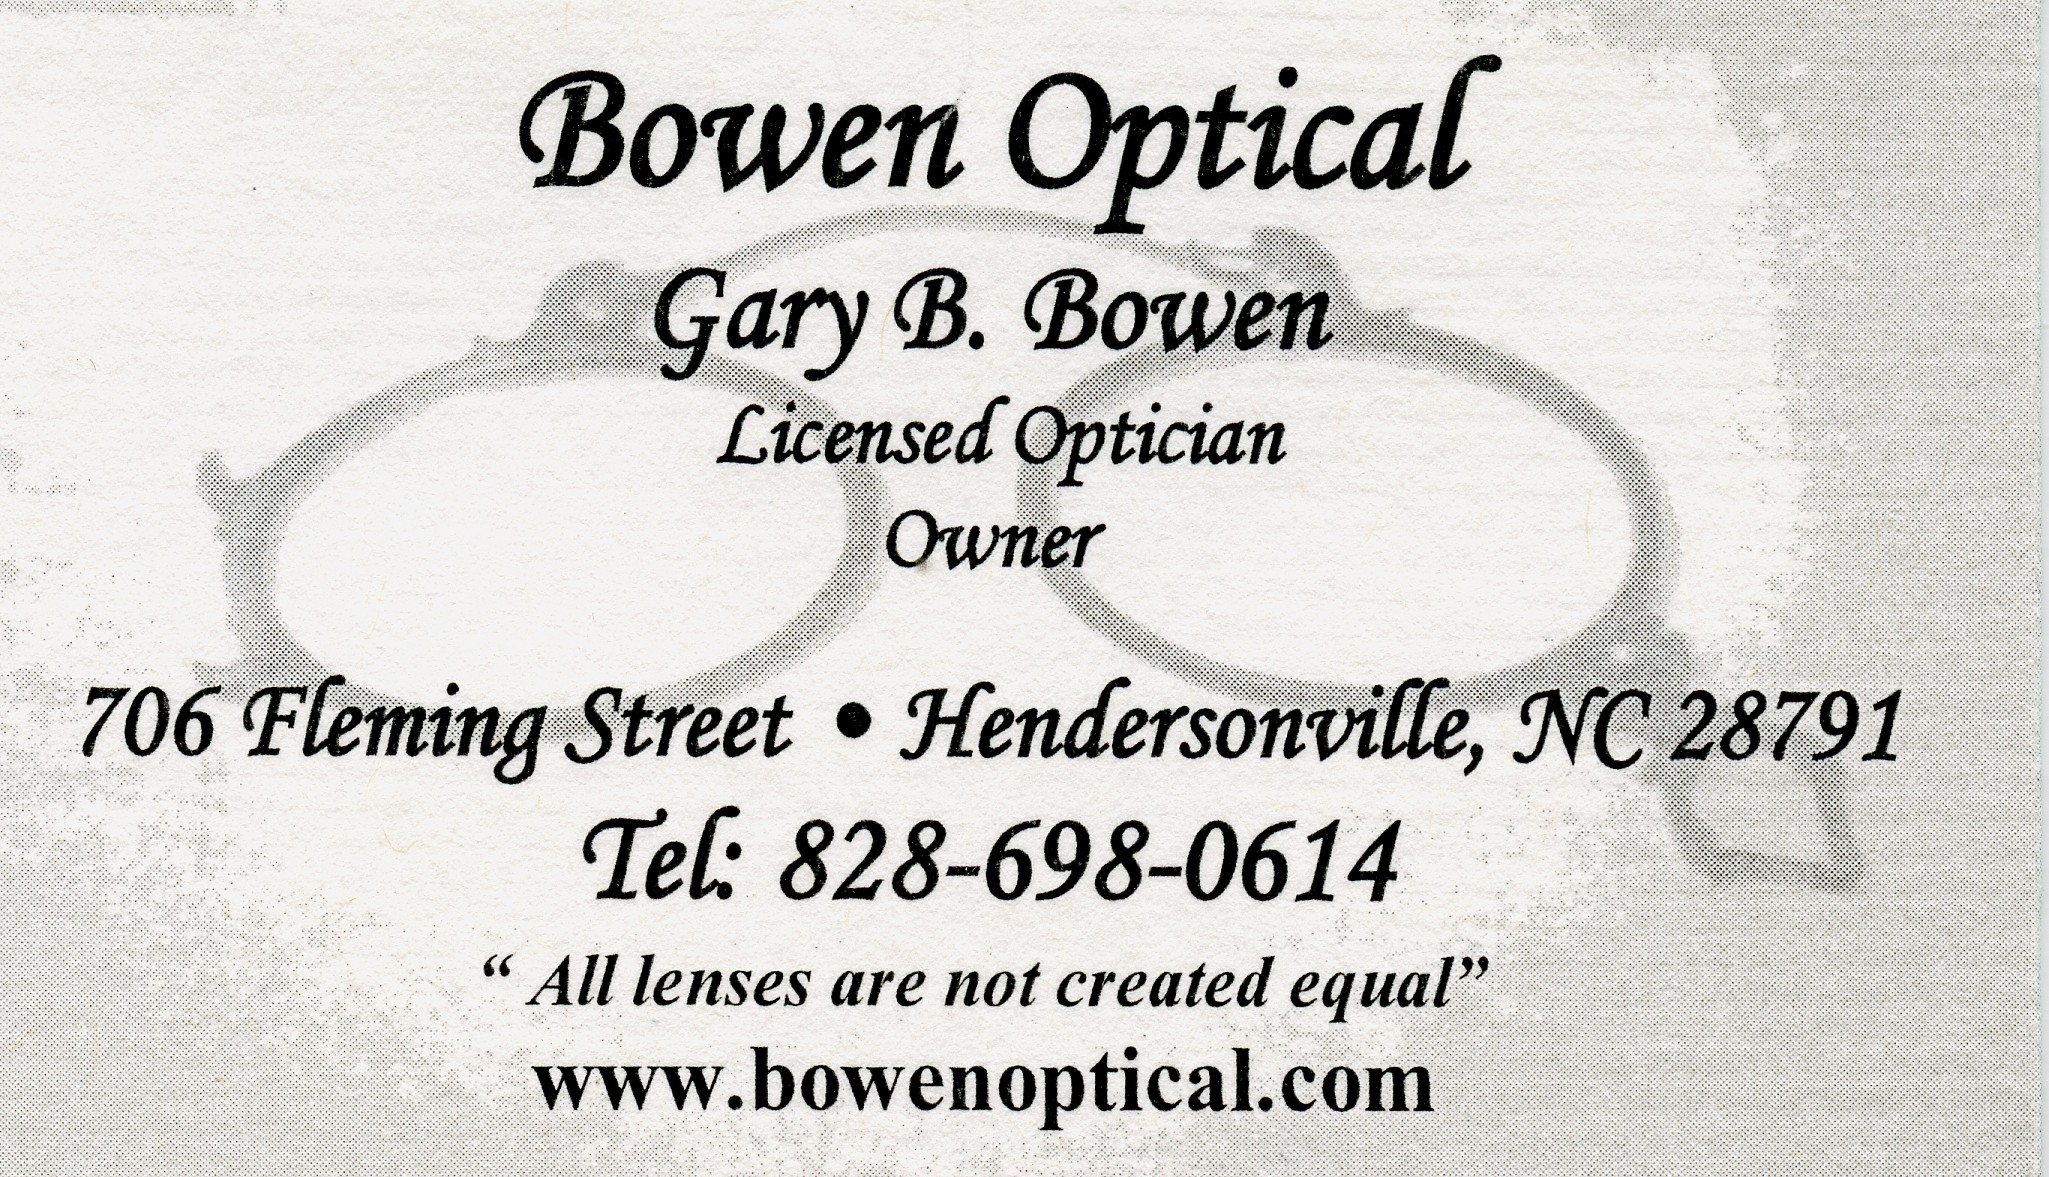 Bowen Optical